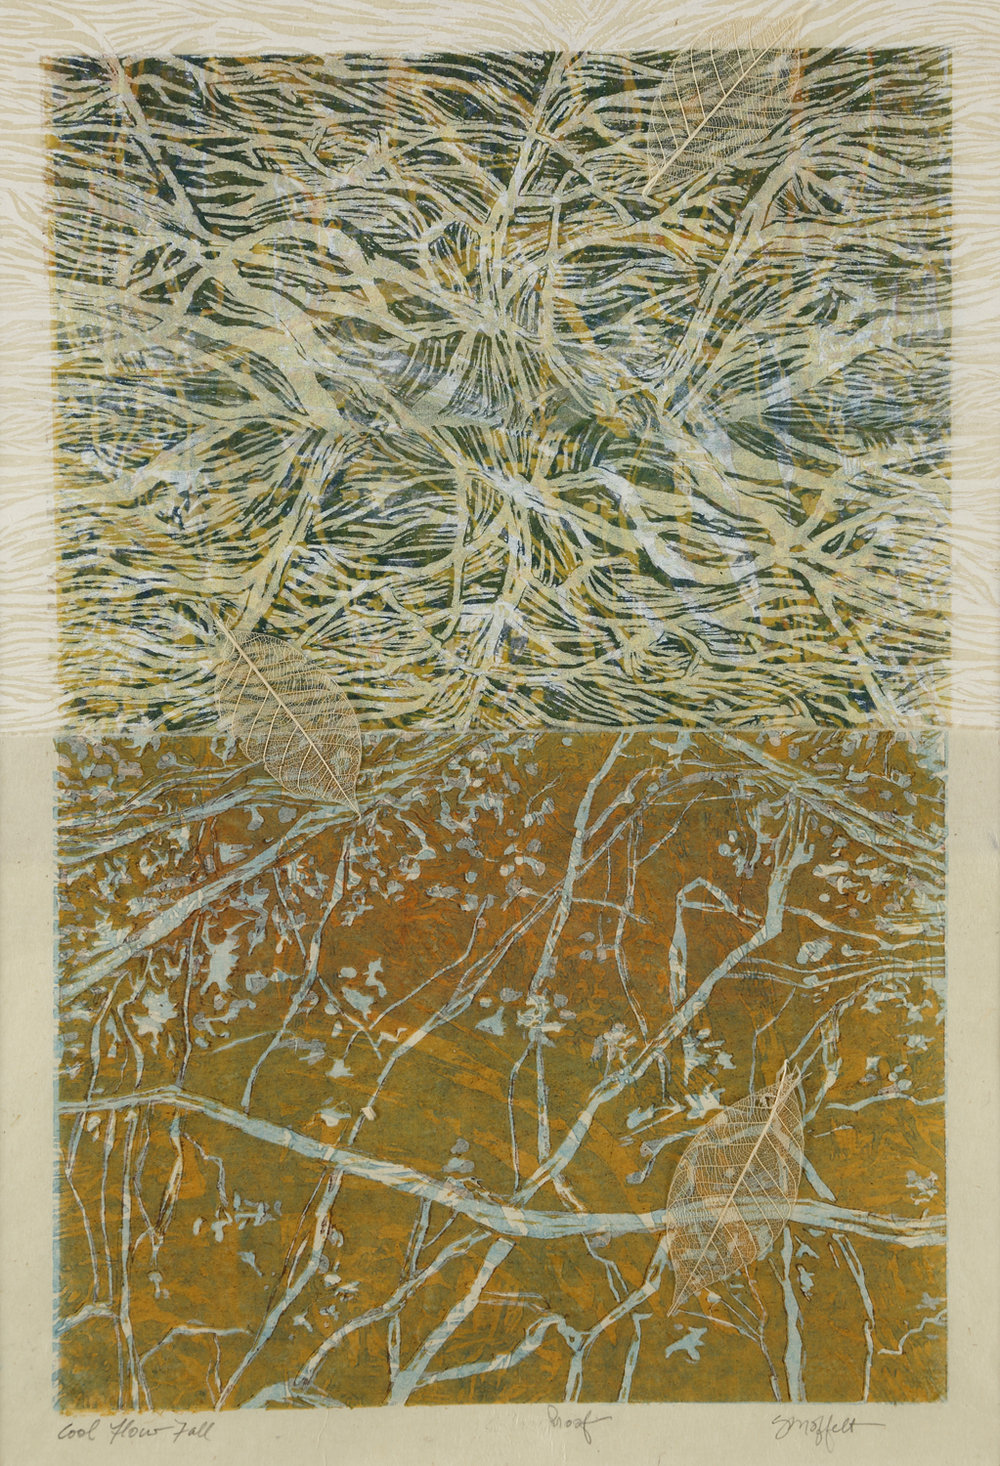 """Cool Flow, Fall,"" by Susan Moffett, 14x20in, relief monoprint collage, NFS"